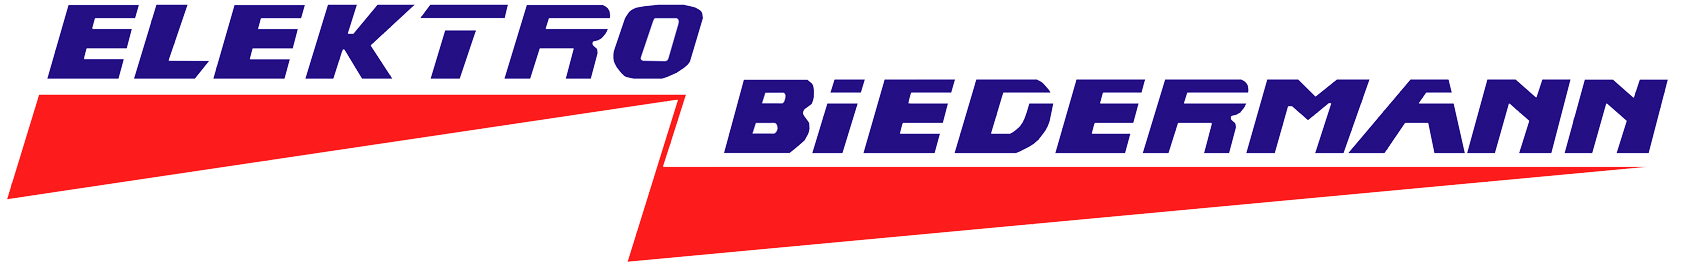 Elektro Biedermann